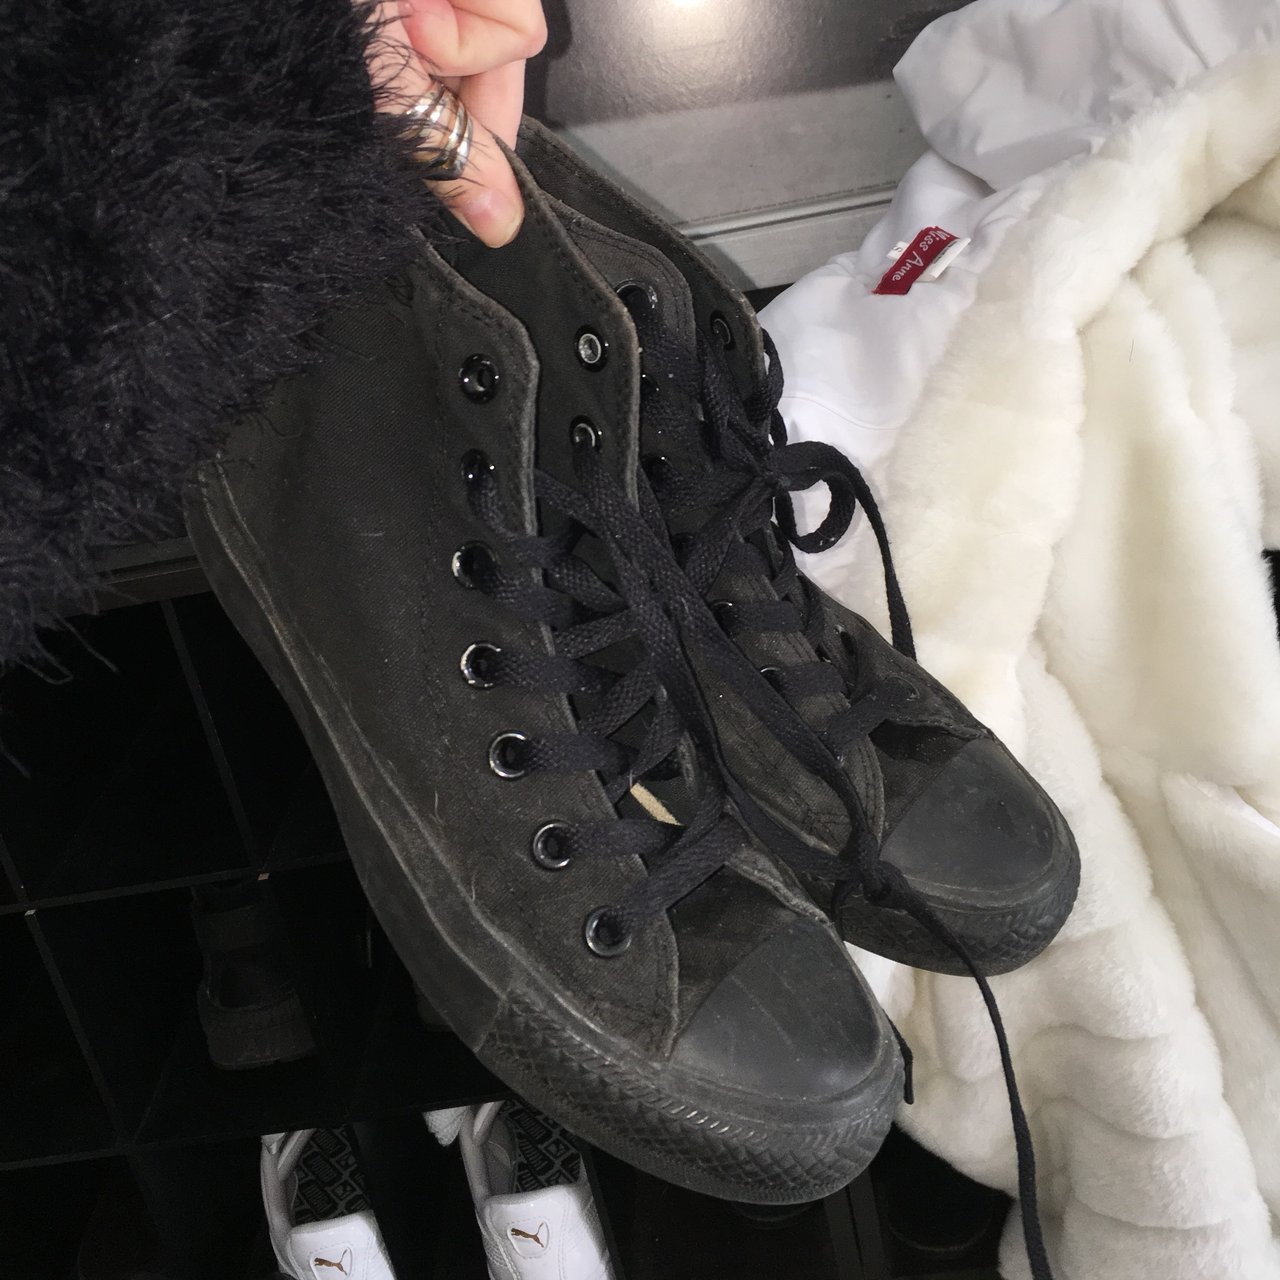 56bf2d7b3694 Black high top converse Size UK 4 Worn 3 times max but in - Depop